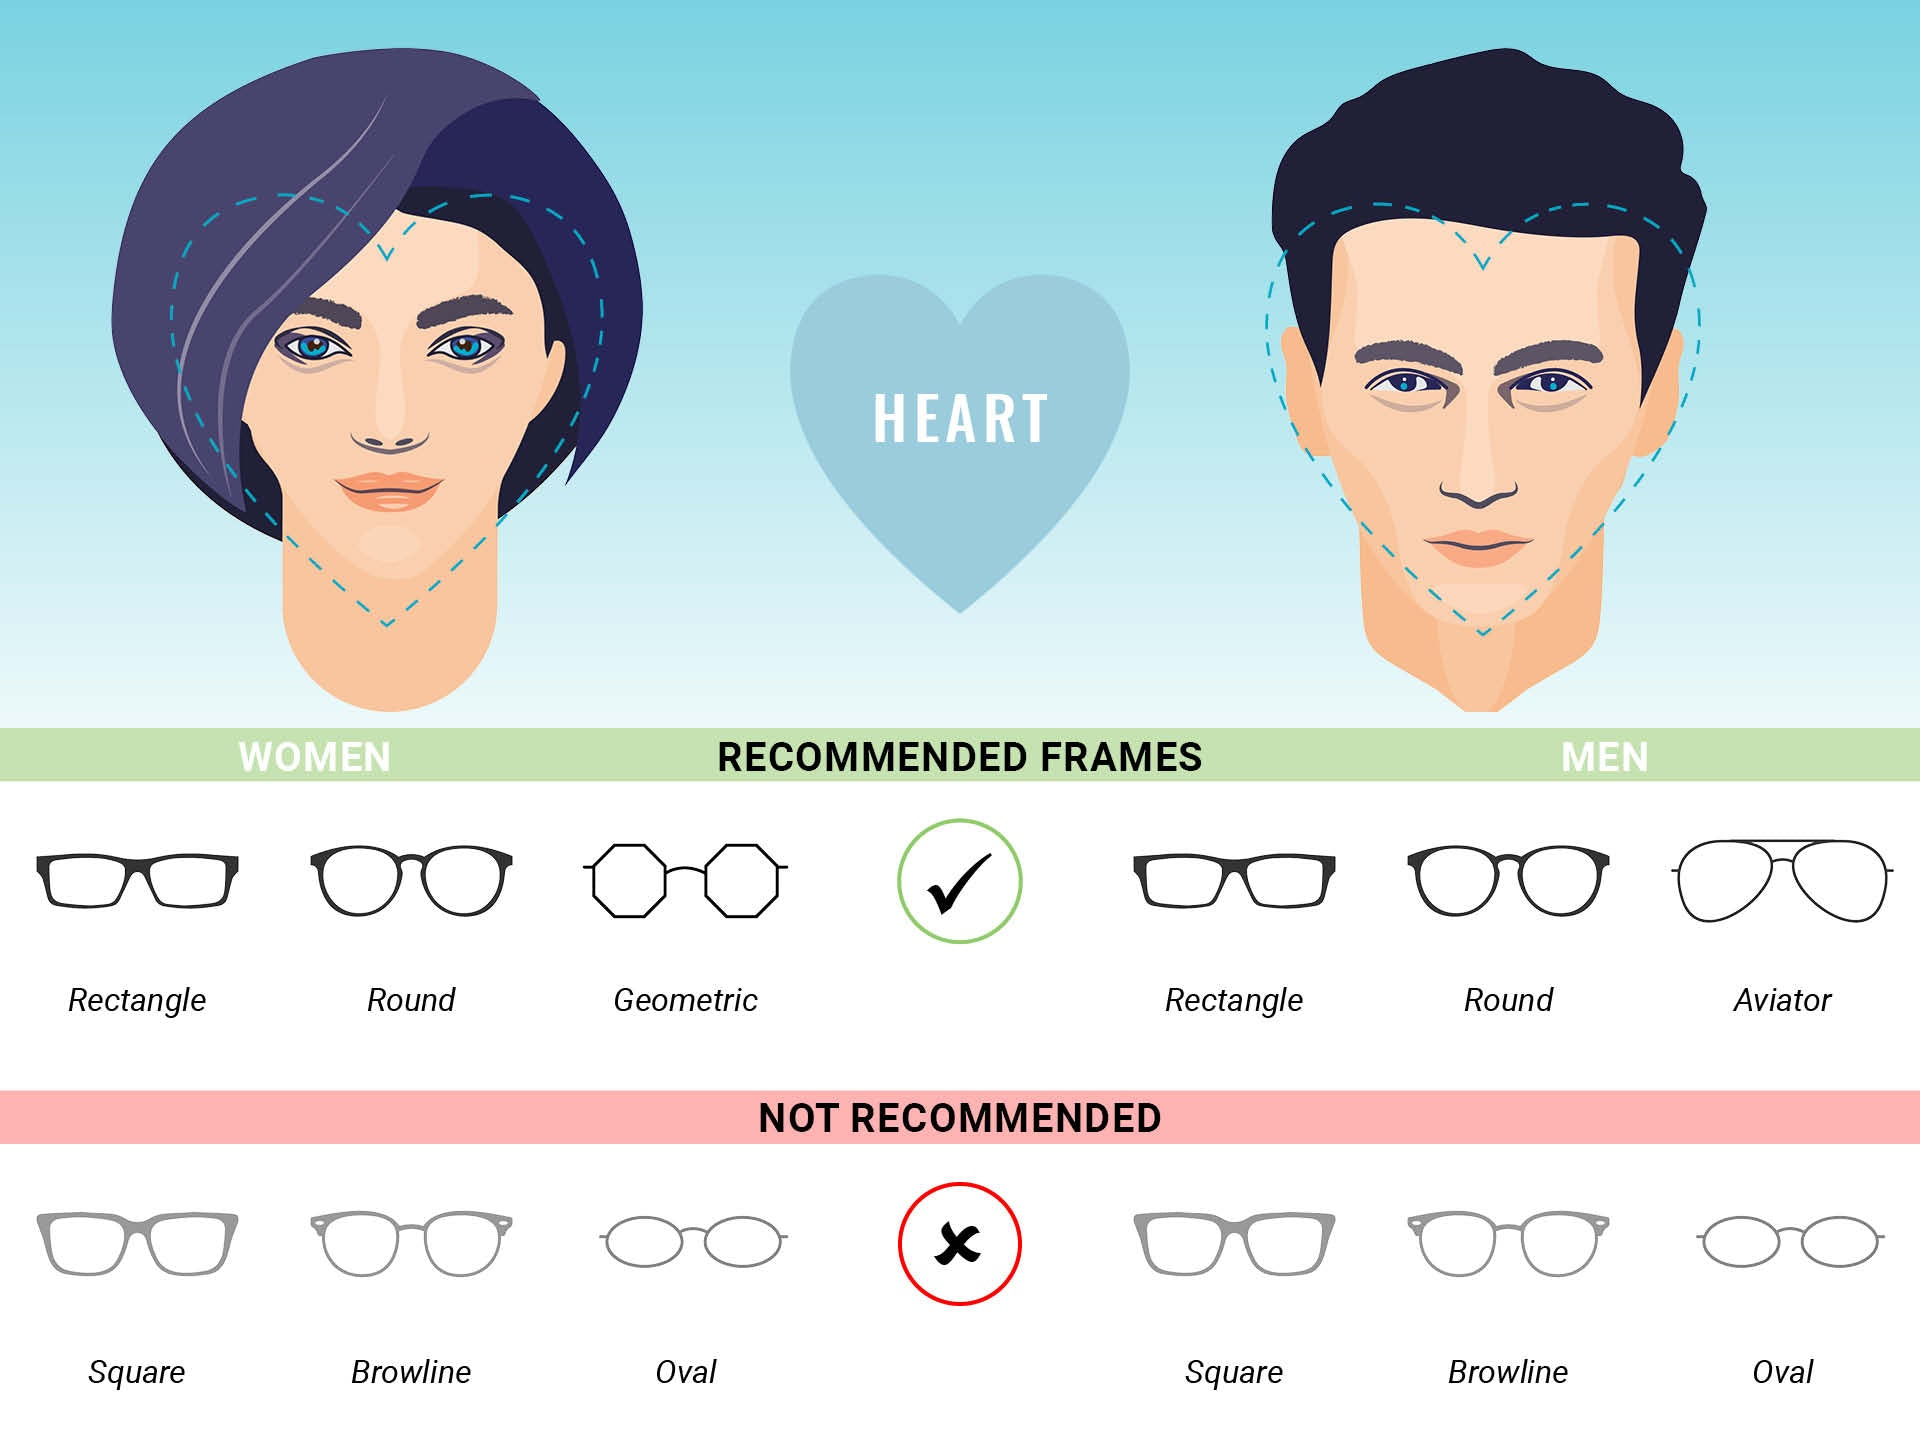 Eyeglass frame recommendations for heart face shapes for men and women